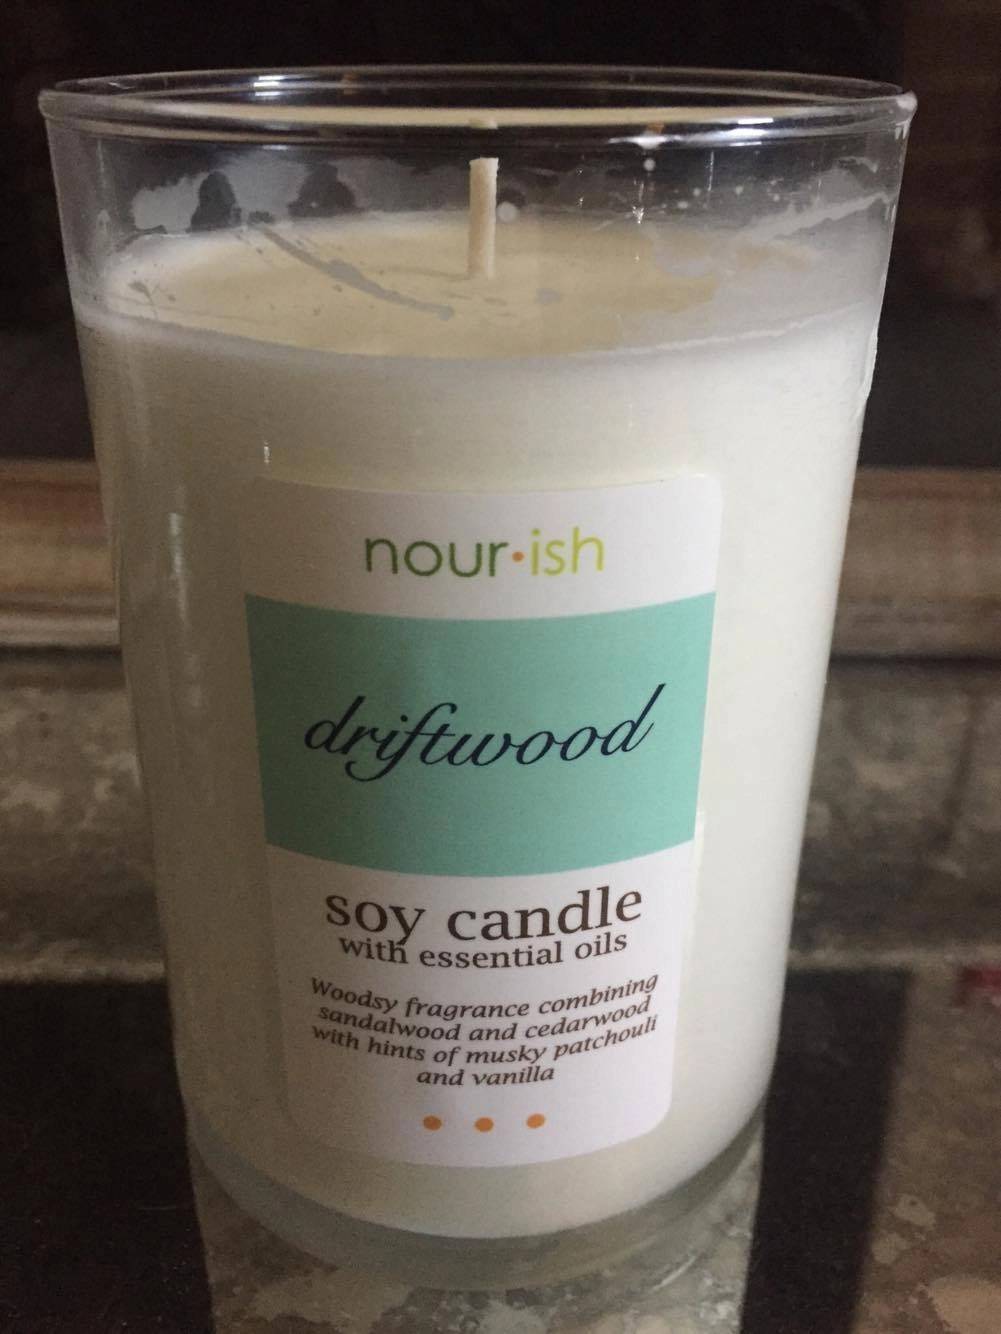 Nourish Driftwood Soy Candle